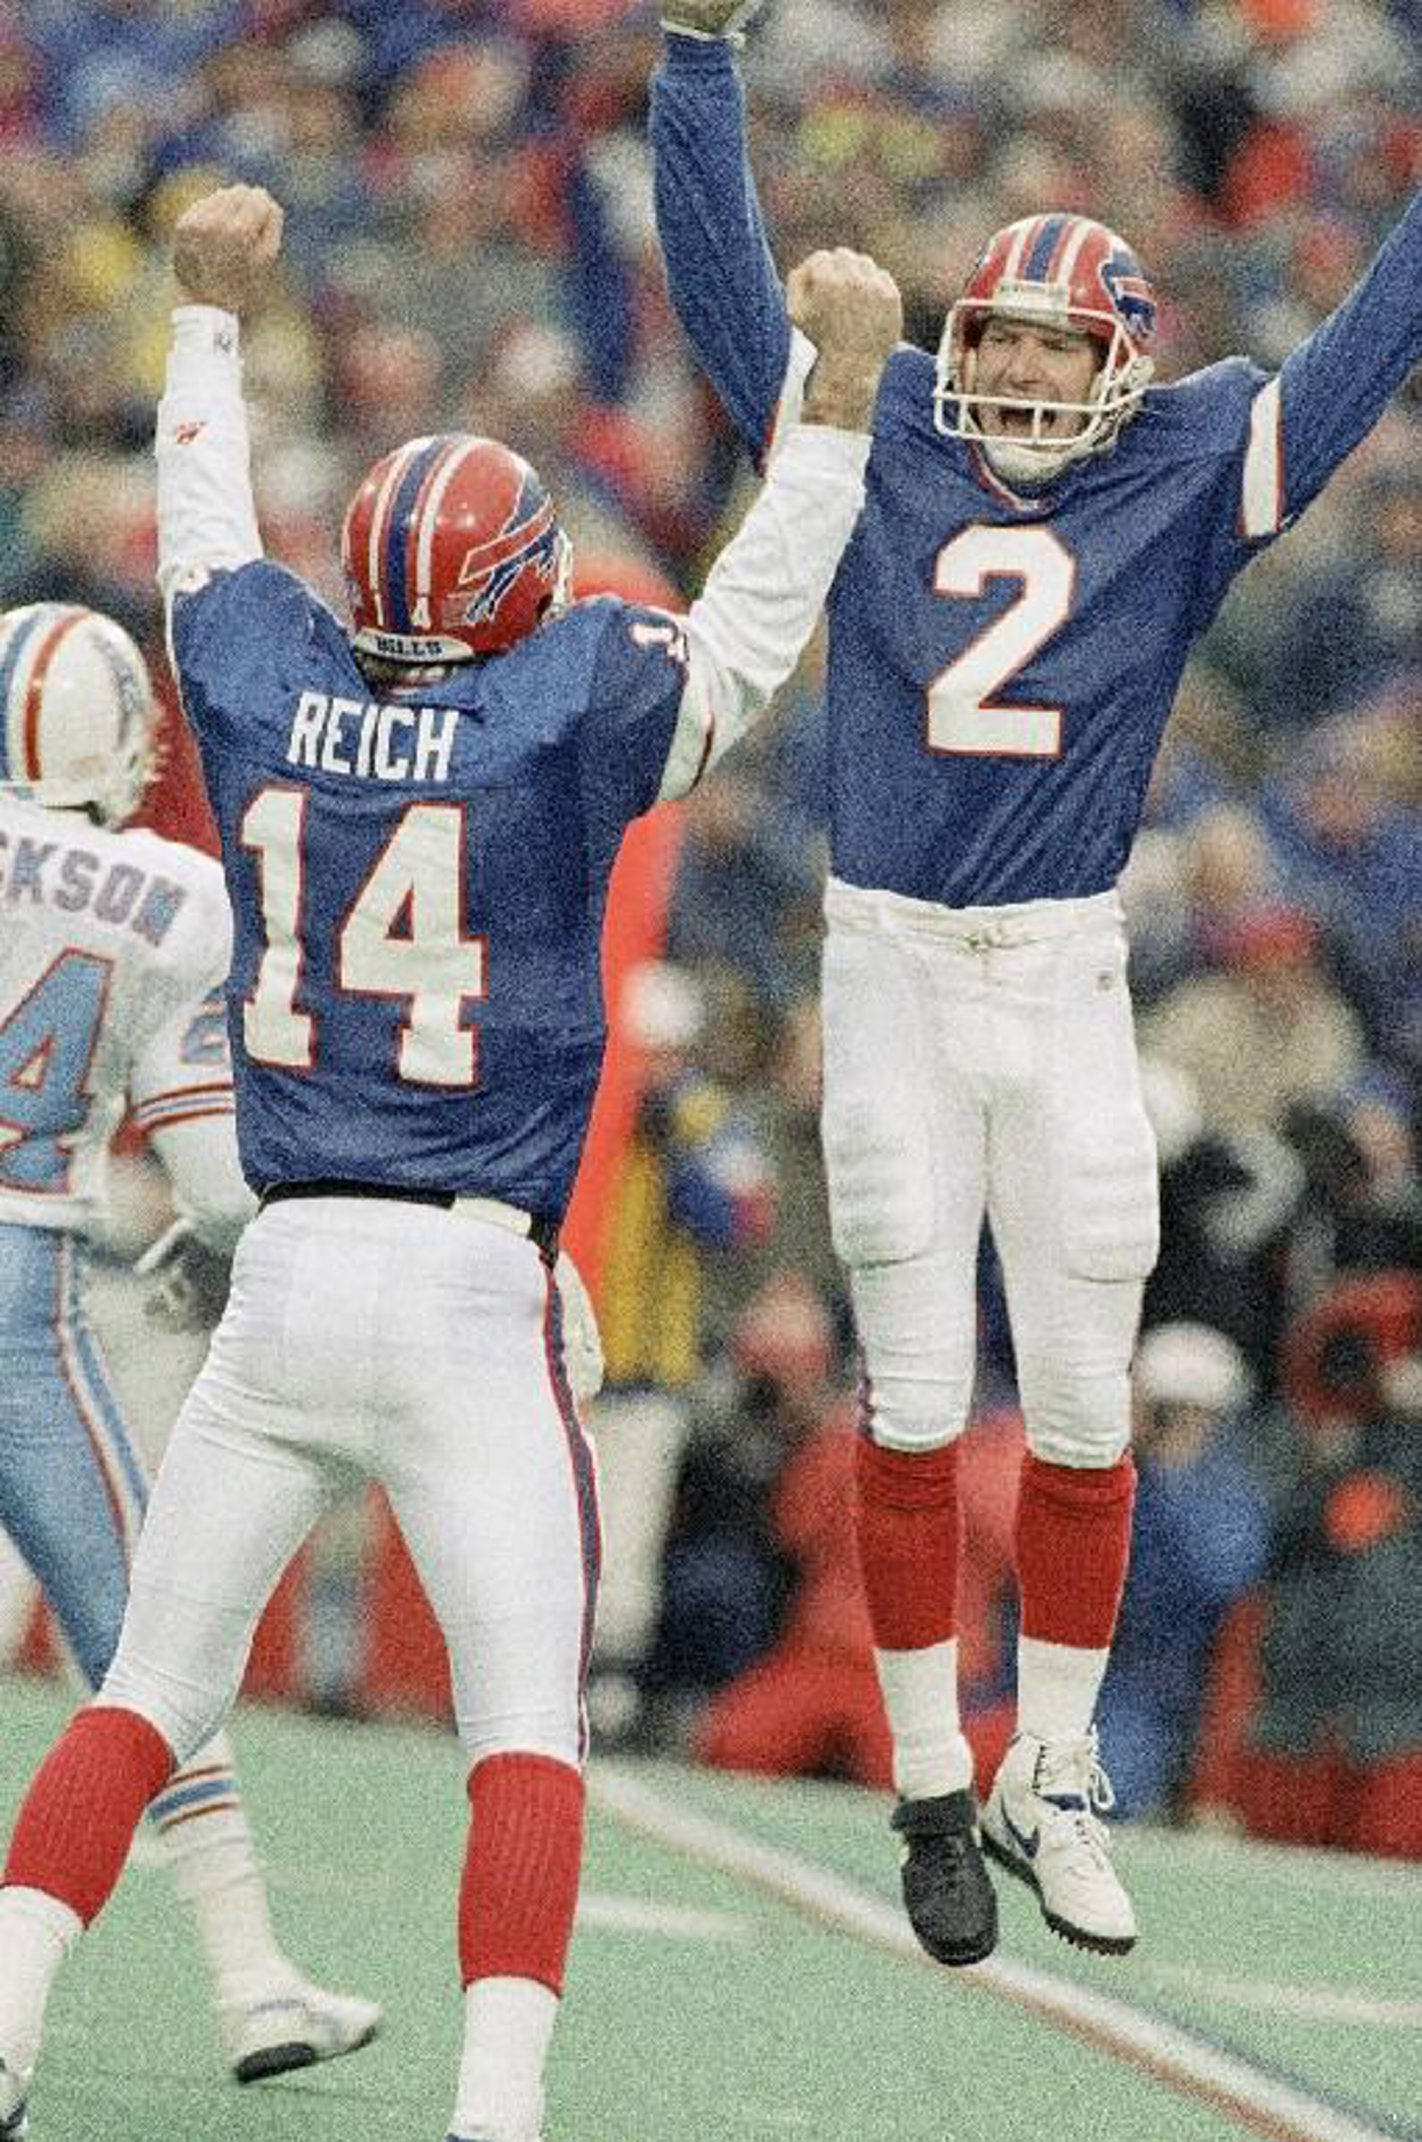 Former Bills kicker Steve Christie said GM Doug Whaley rejected his offer to help Dan Carpenter, saying the club 'wouldn't be receptive to outsiders.'